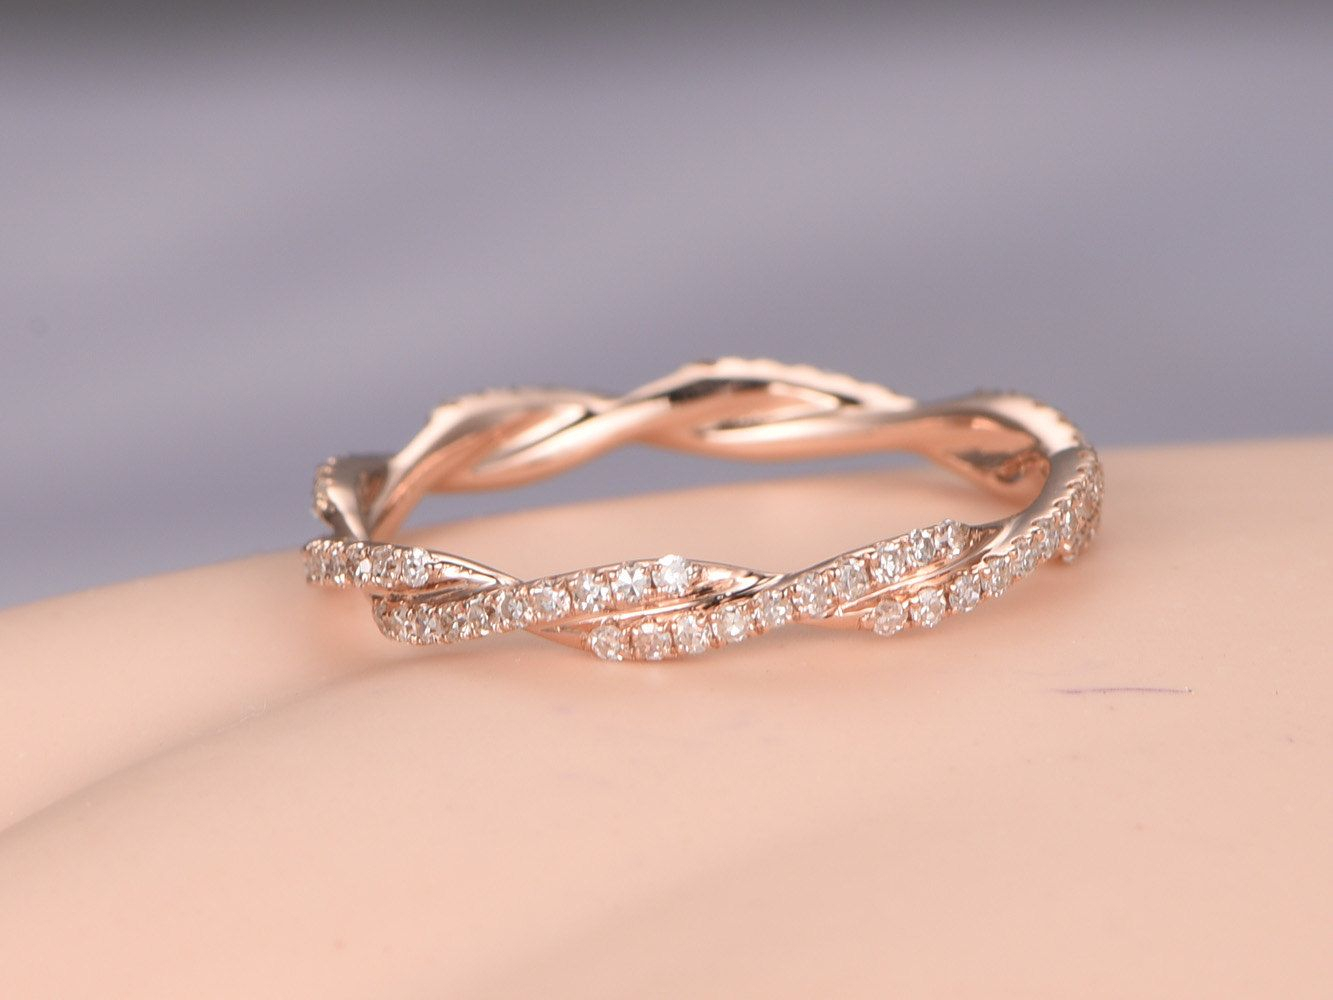 Twisted Shape,diamond Wedding Band Rose Gold,eternity Ring With Regard To Current Diamond Vintage Style Anniversary Bands In Rose Gold (View 21 of 25)